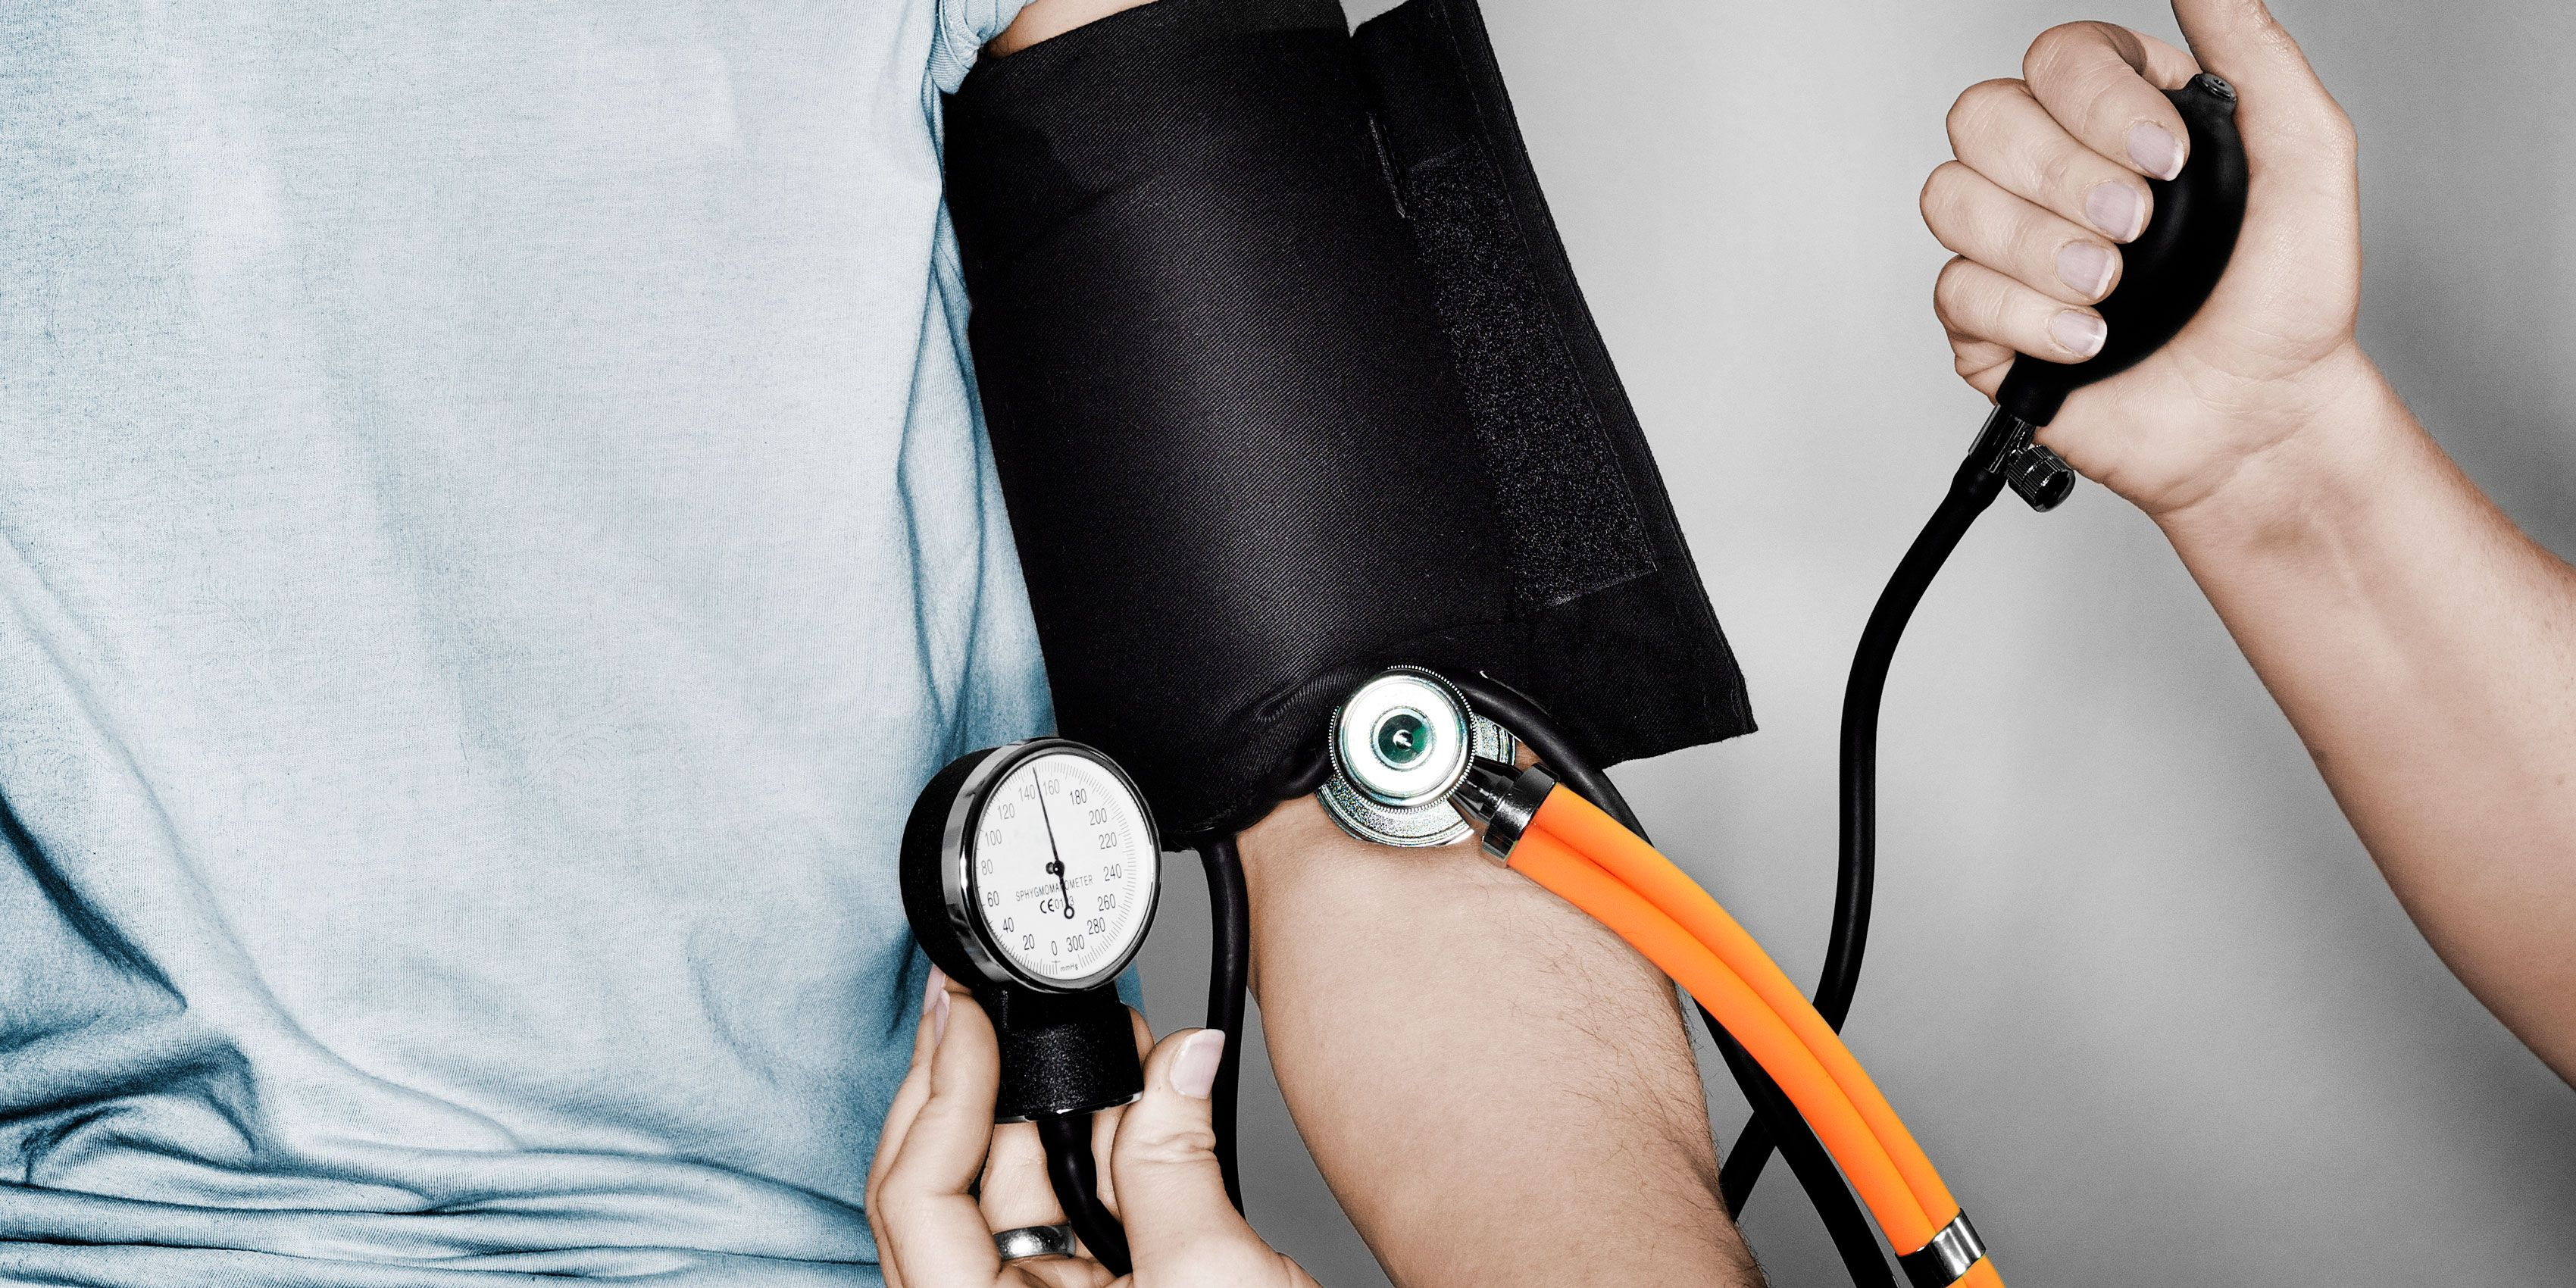 The Great Millennial Blood Pressure Problem